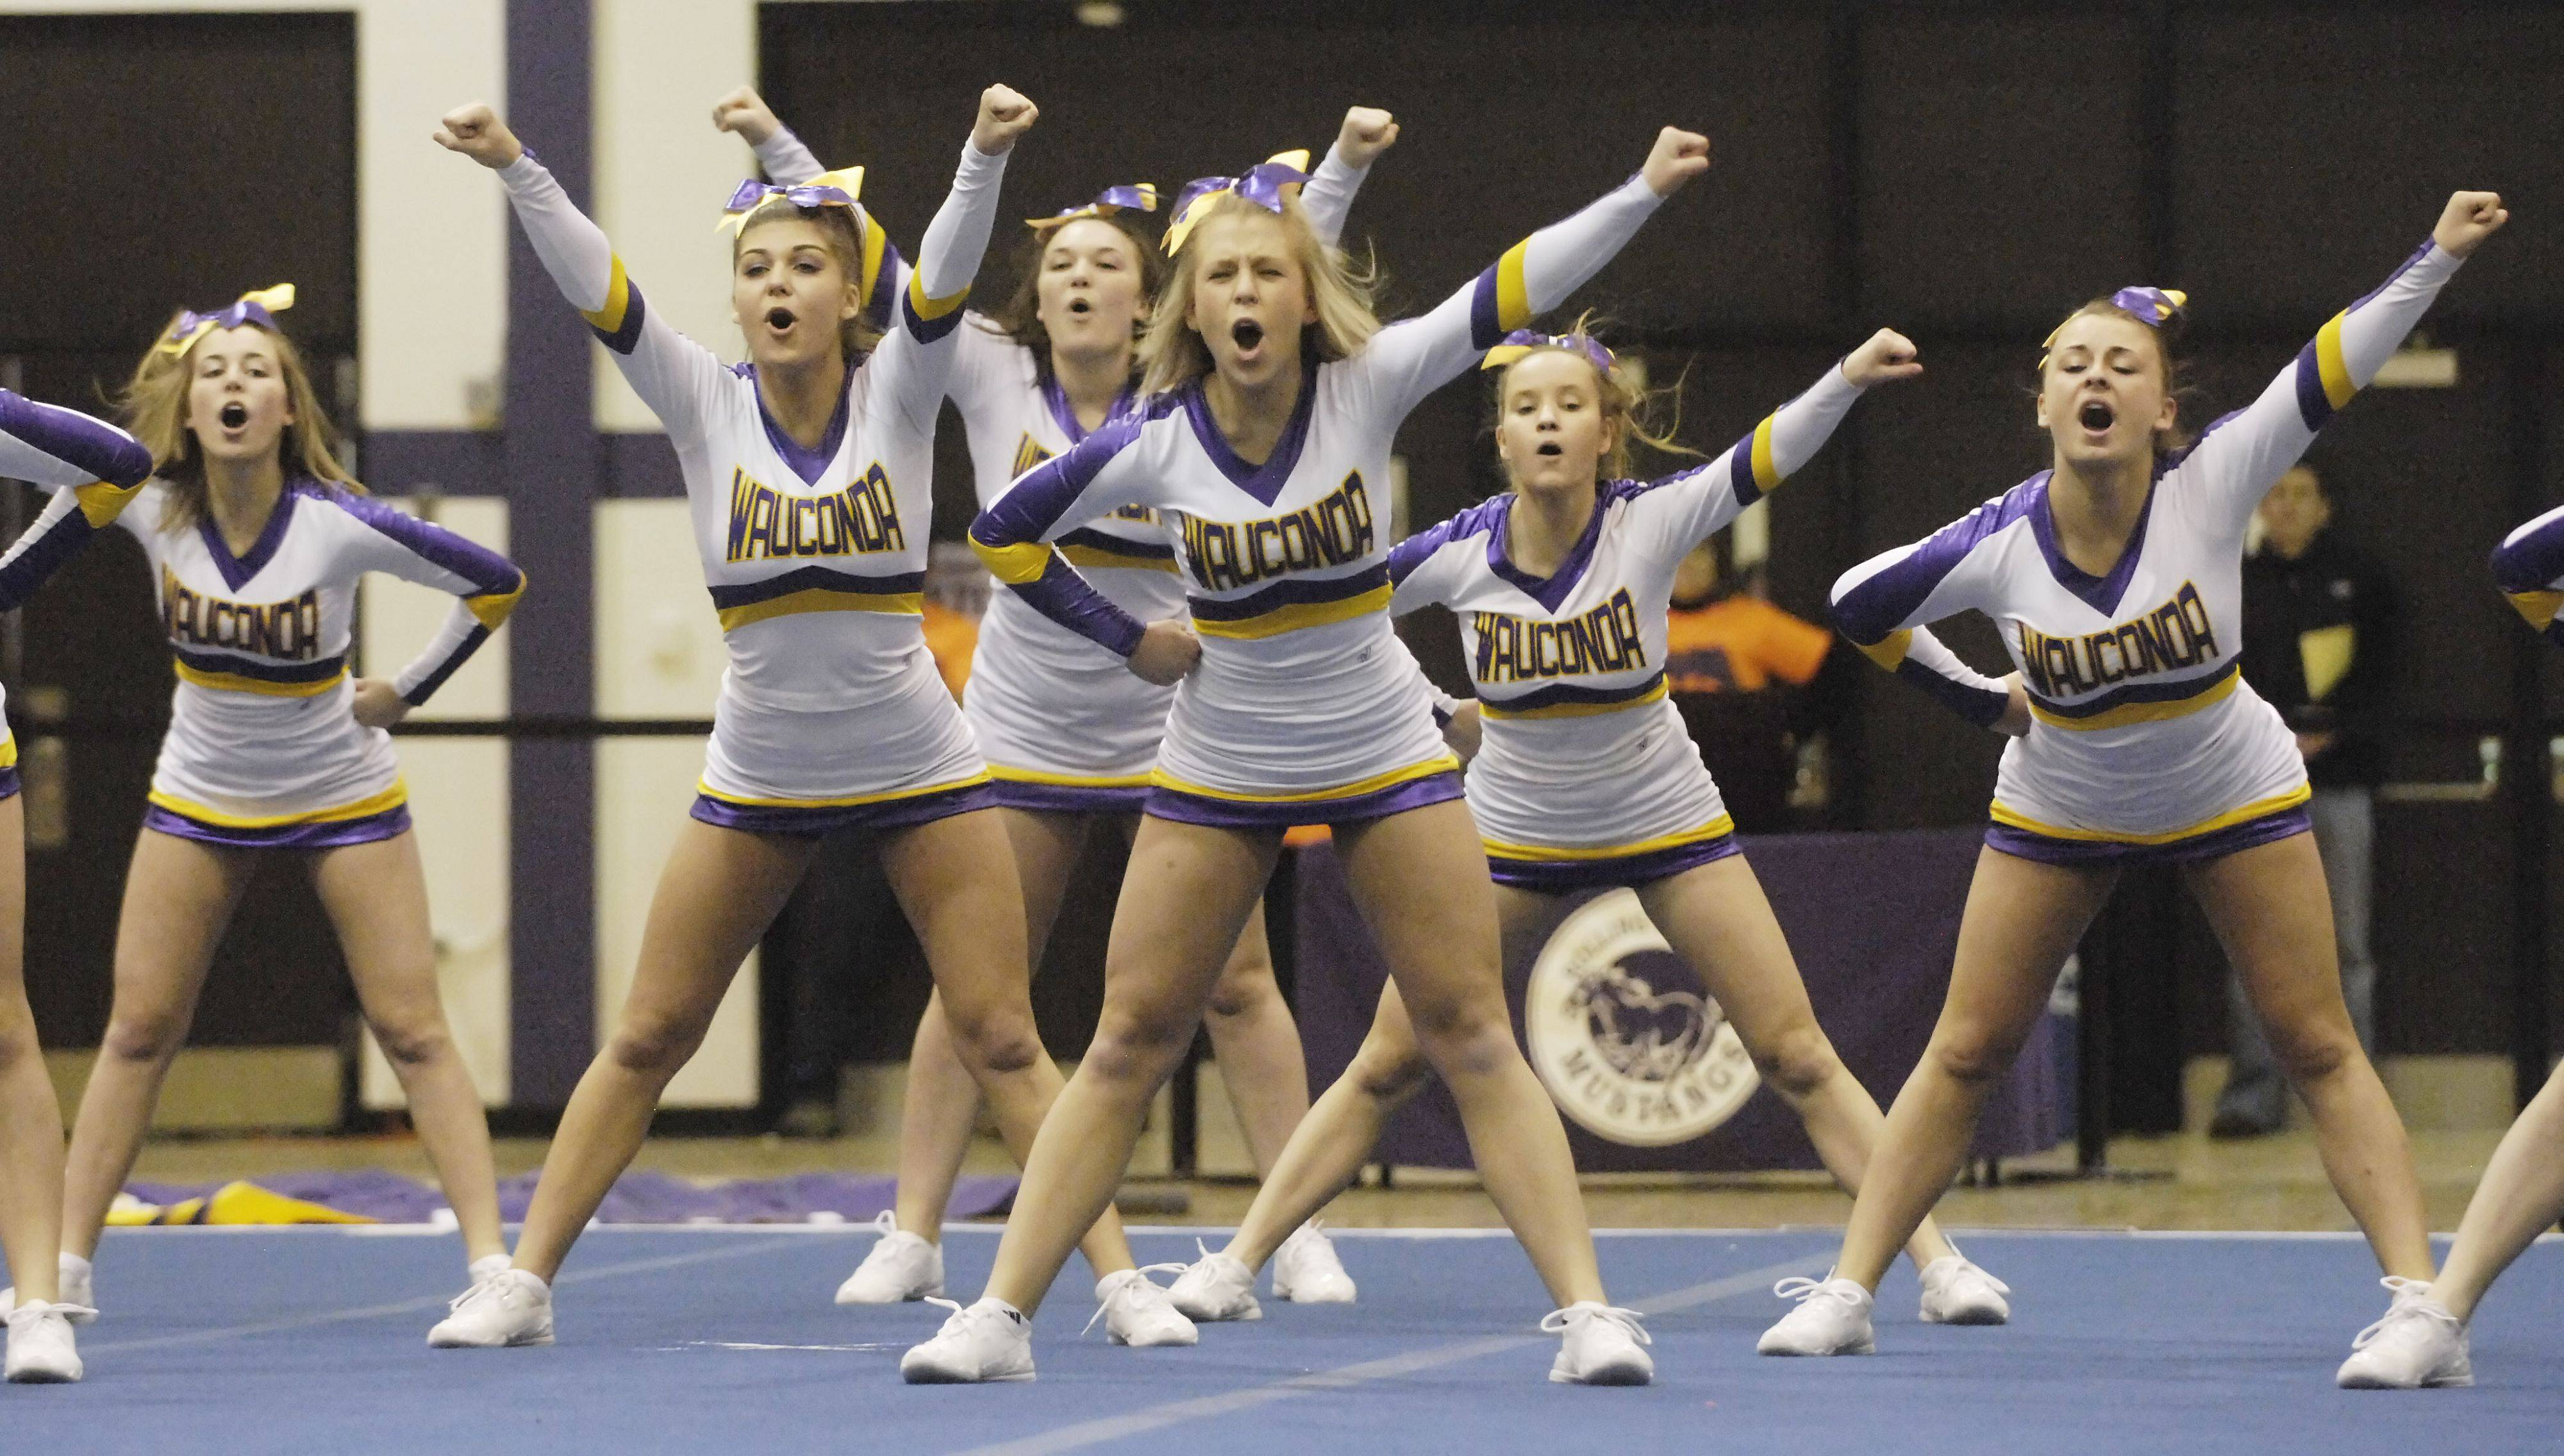 Wauconda competes during Saturday's cheerleading sectional hosted by Rolling Meadows High School.